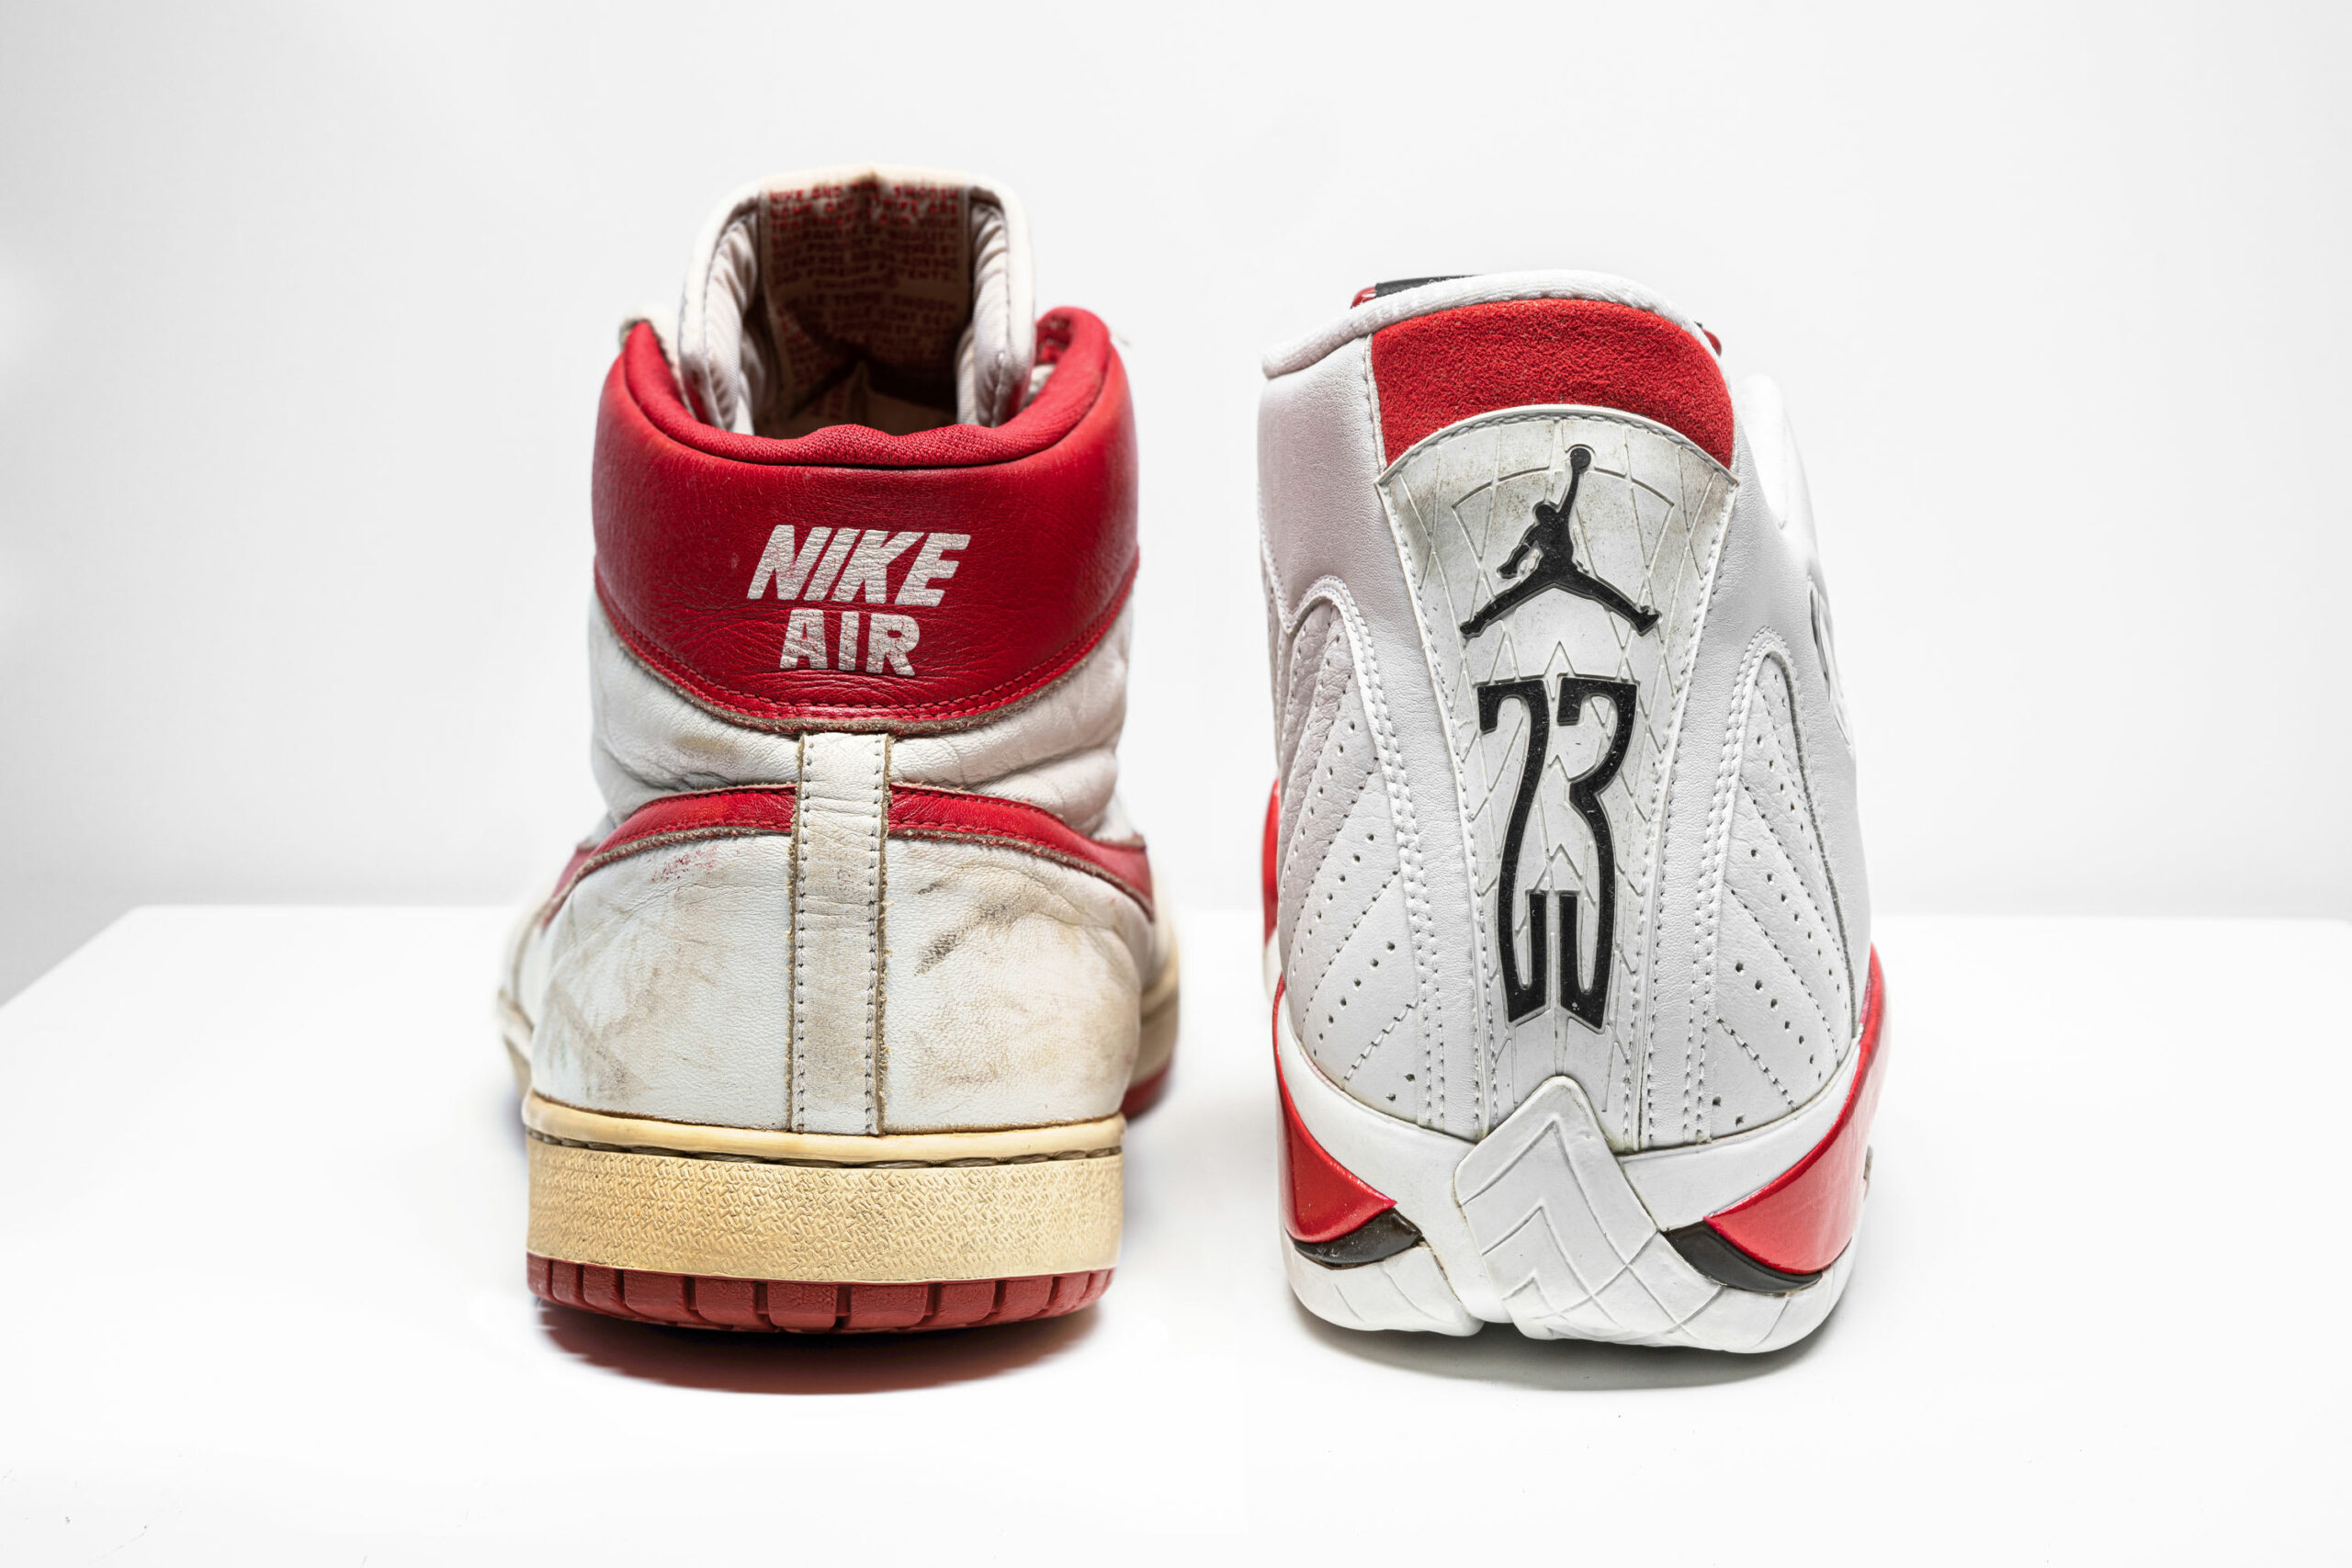 Christies to auction rare Michael Jordan sneakers